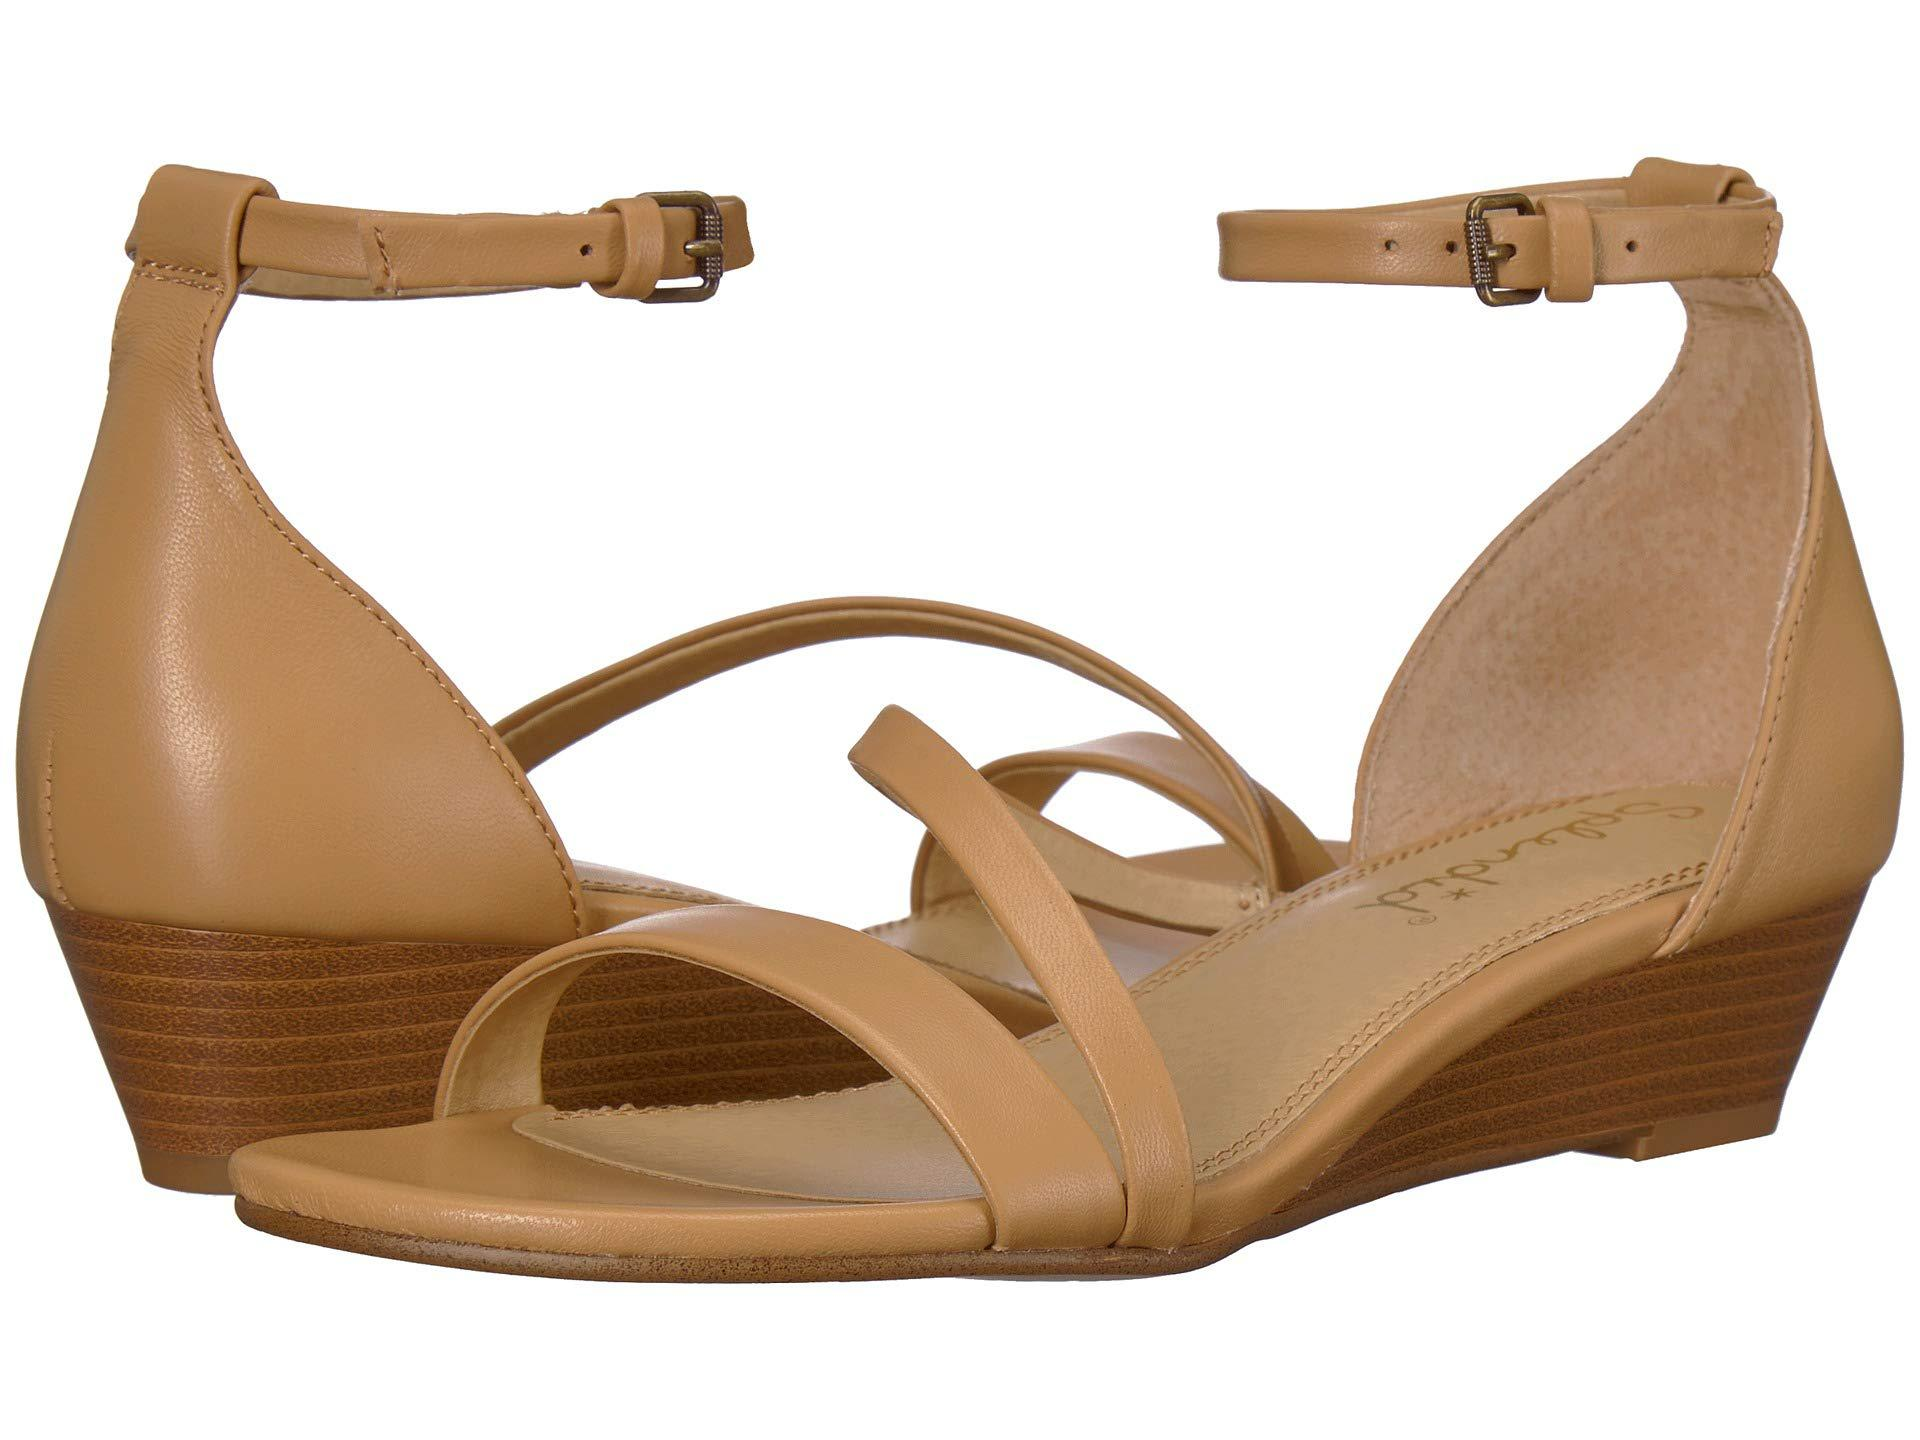 05a509dd658d Lyst - Splendid Stefano (black Leather) Women s Wedge Shoes in Natural